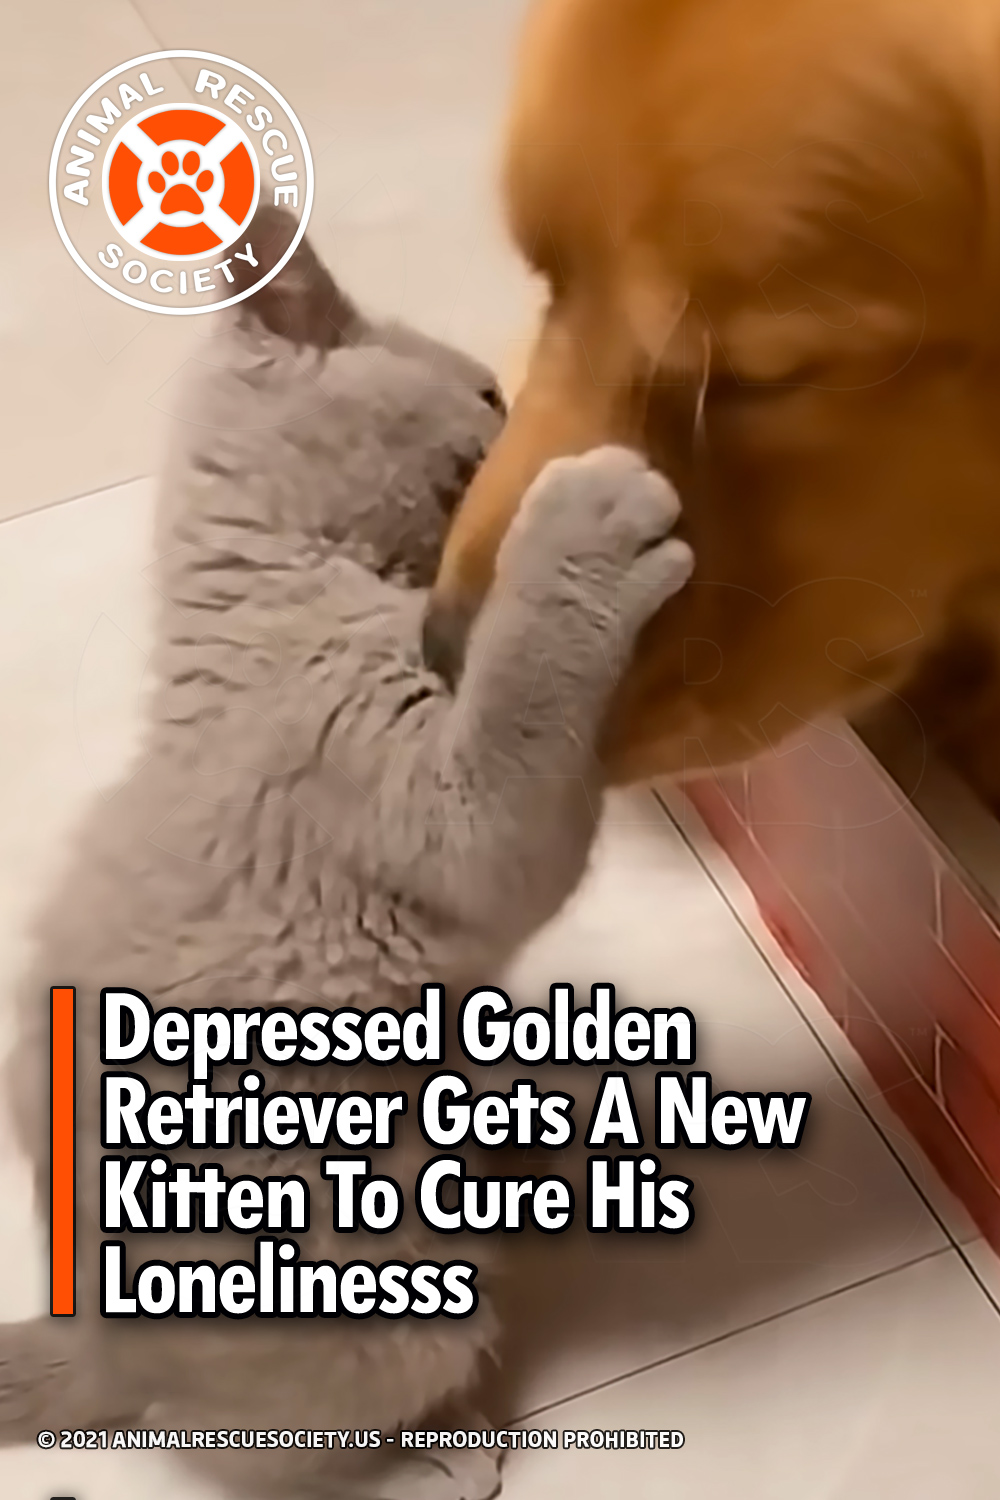 Depressed Golden Retriever Gets A New Kitten To Cure His Loneliness